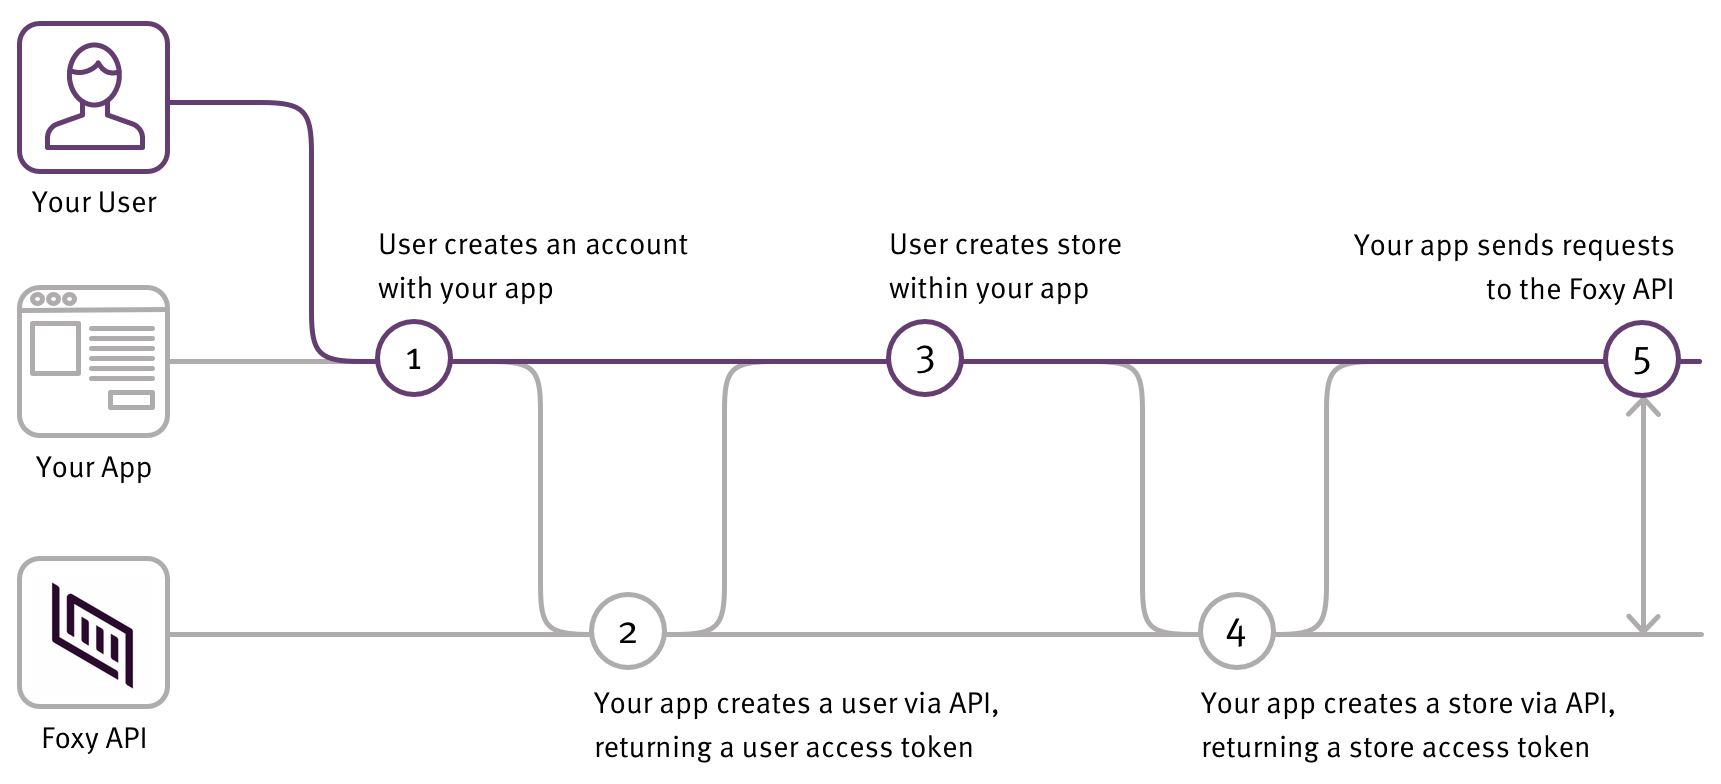 Whitelabeled OAuth flow